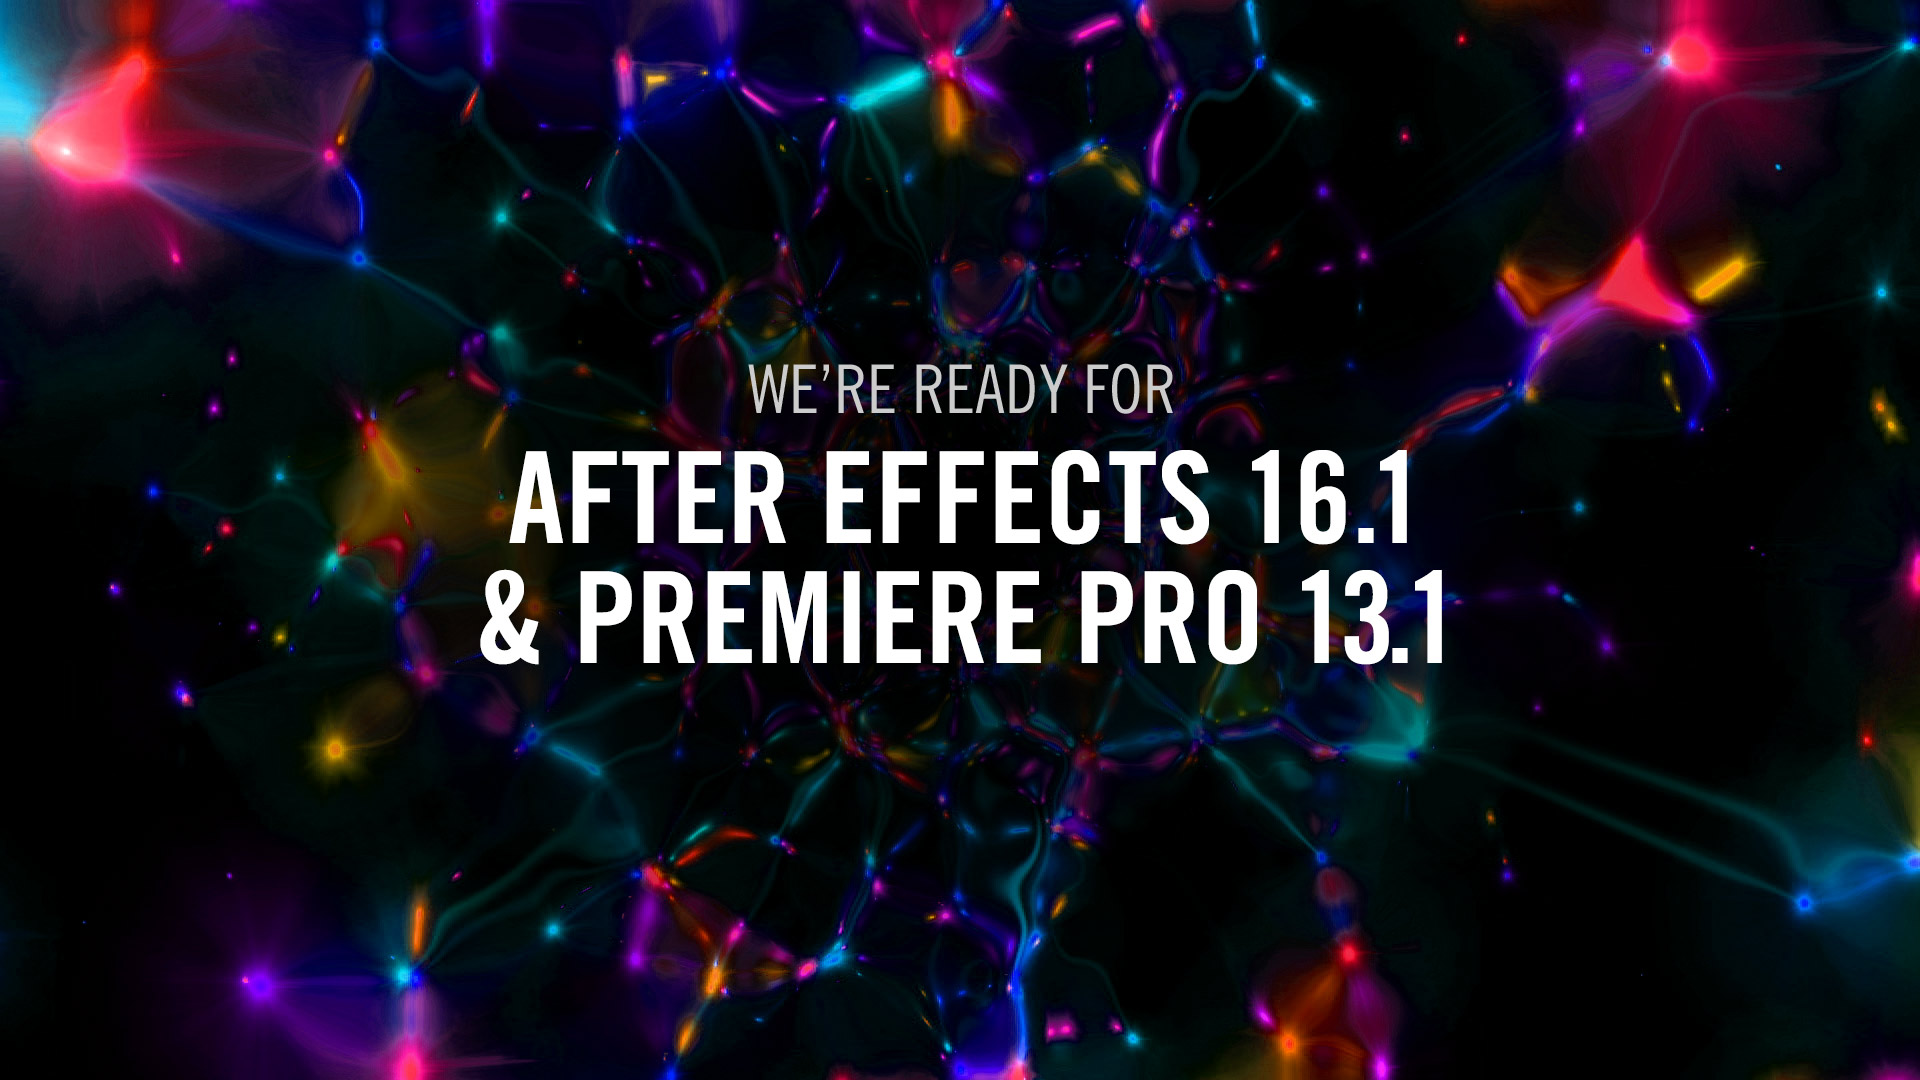 Crack after effects 16 1 | Adobe After Effects CC 2019 16 1 2 55